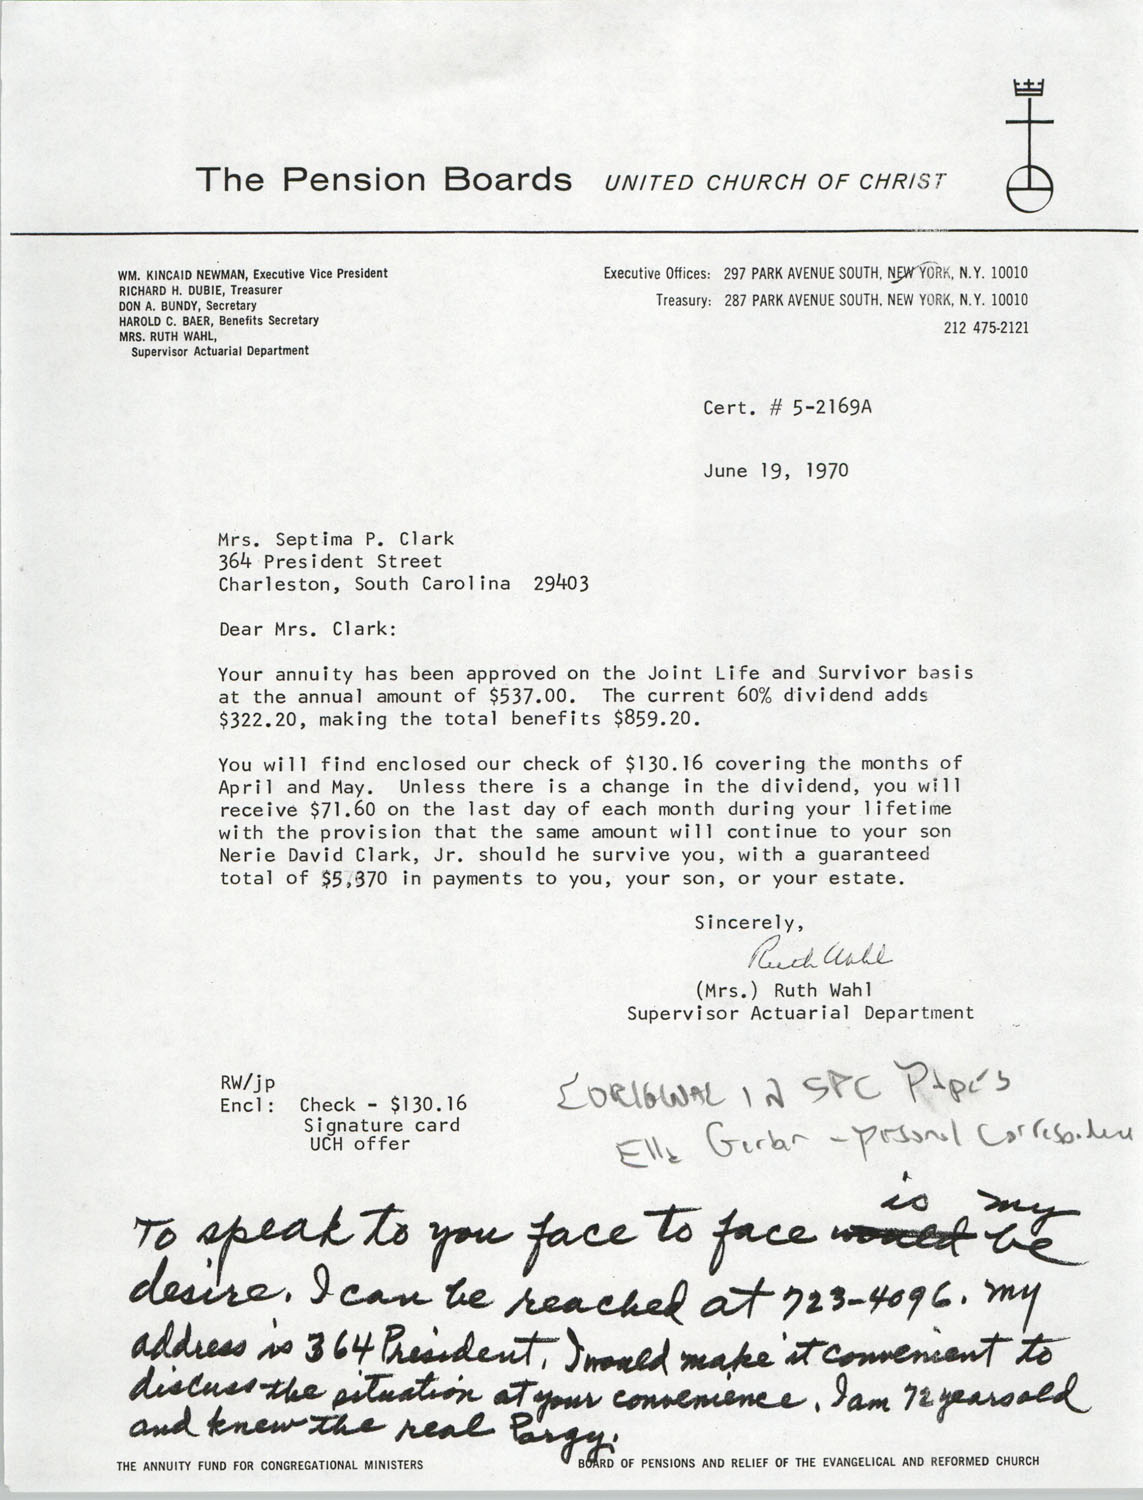 Letter from Ruth Wahl to Septima P. Clark, June 19, 1970